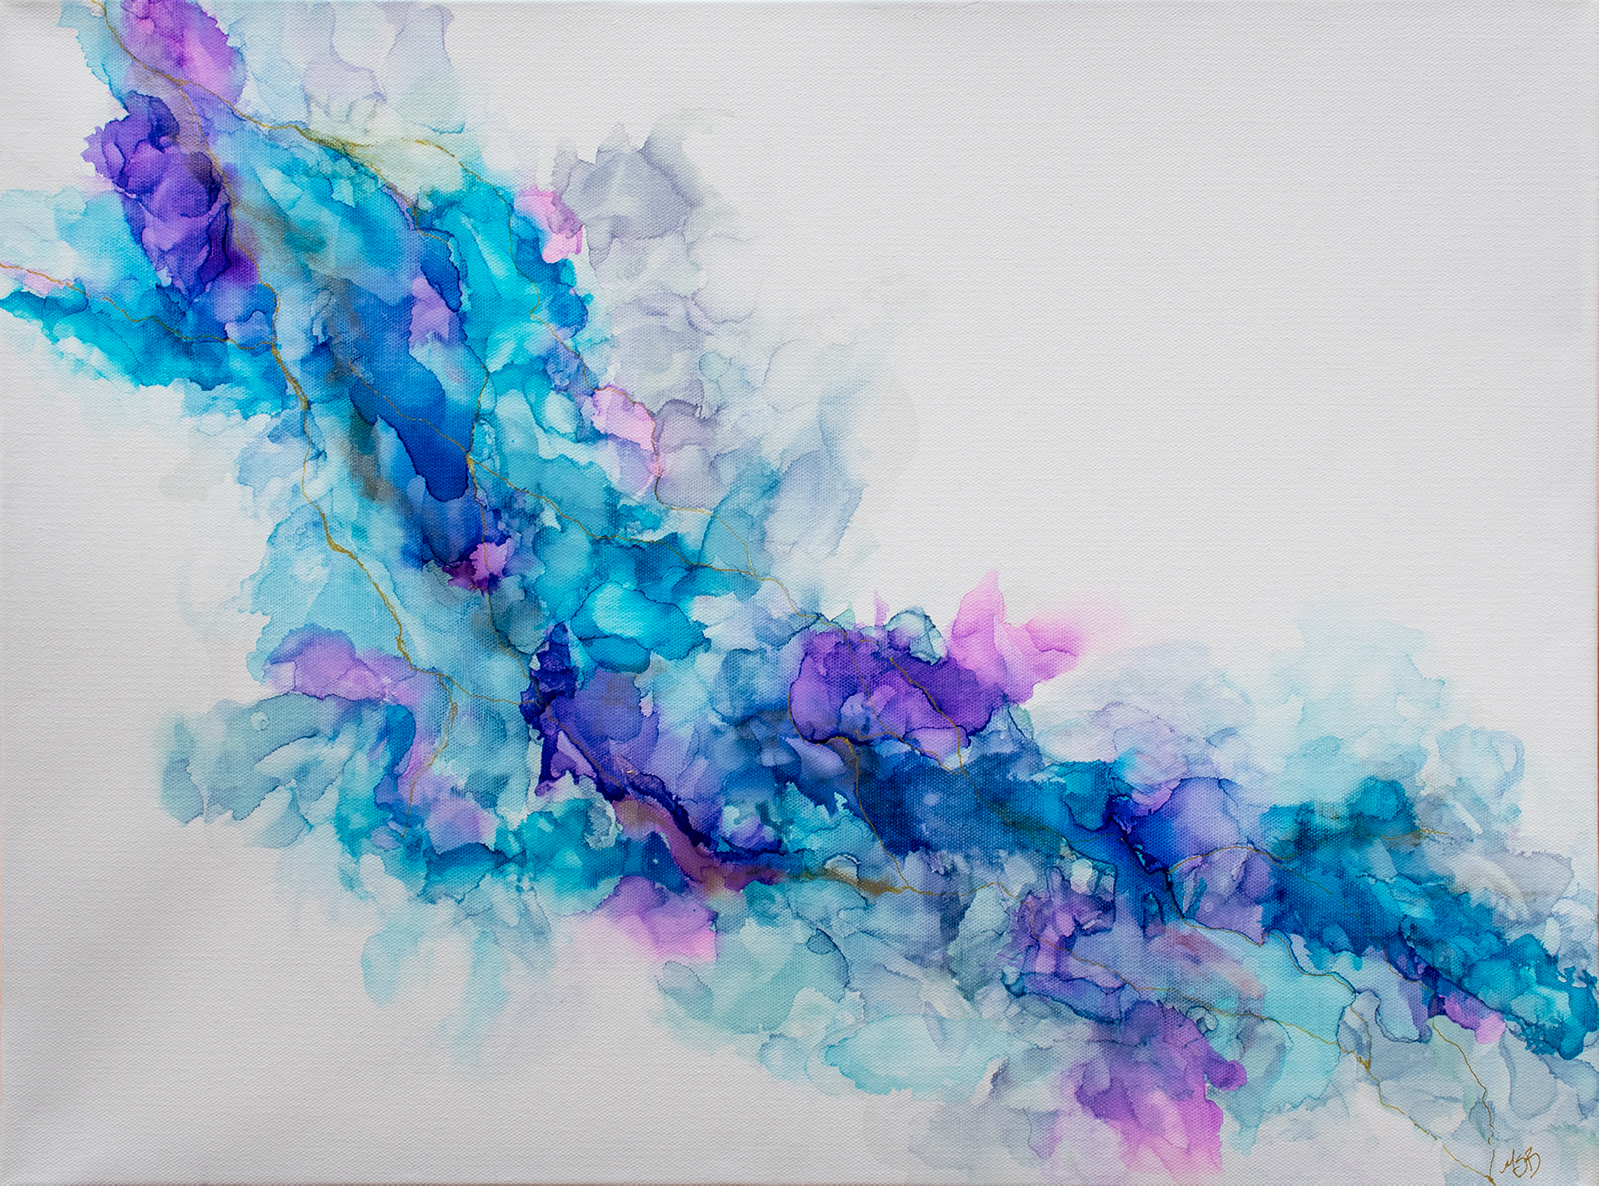 Abstract painting of teal, blue, and purple with gold veins in alcohol ink on canvas by Mary Benke